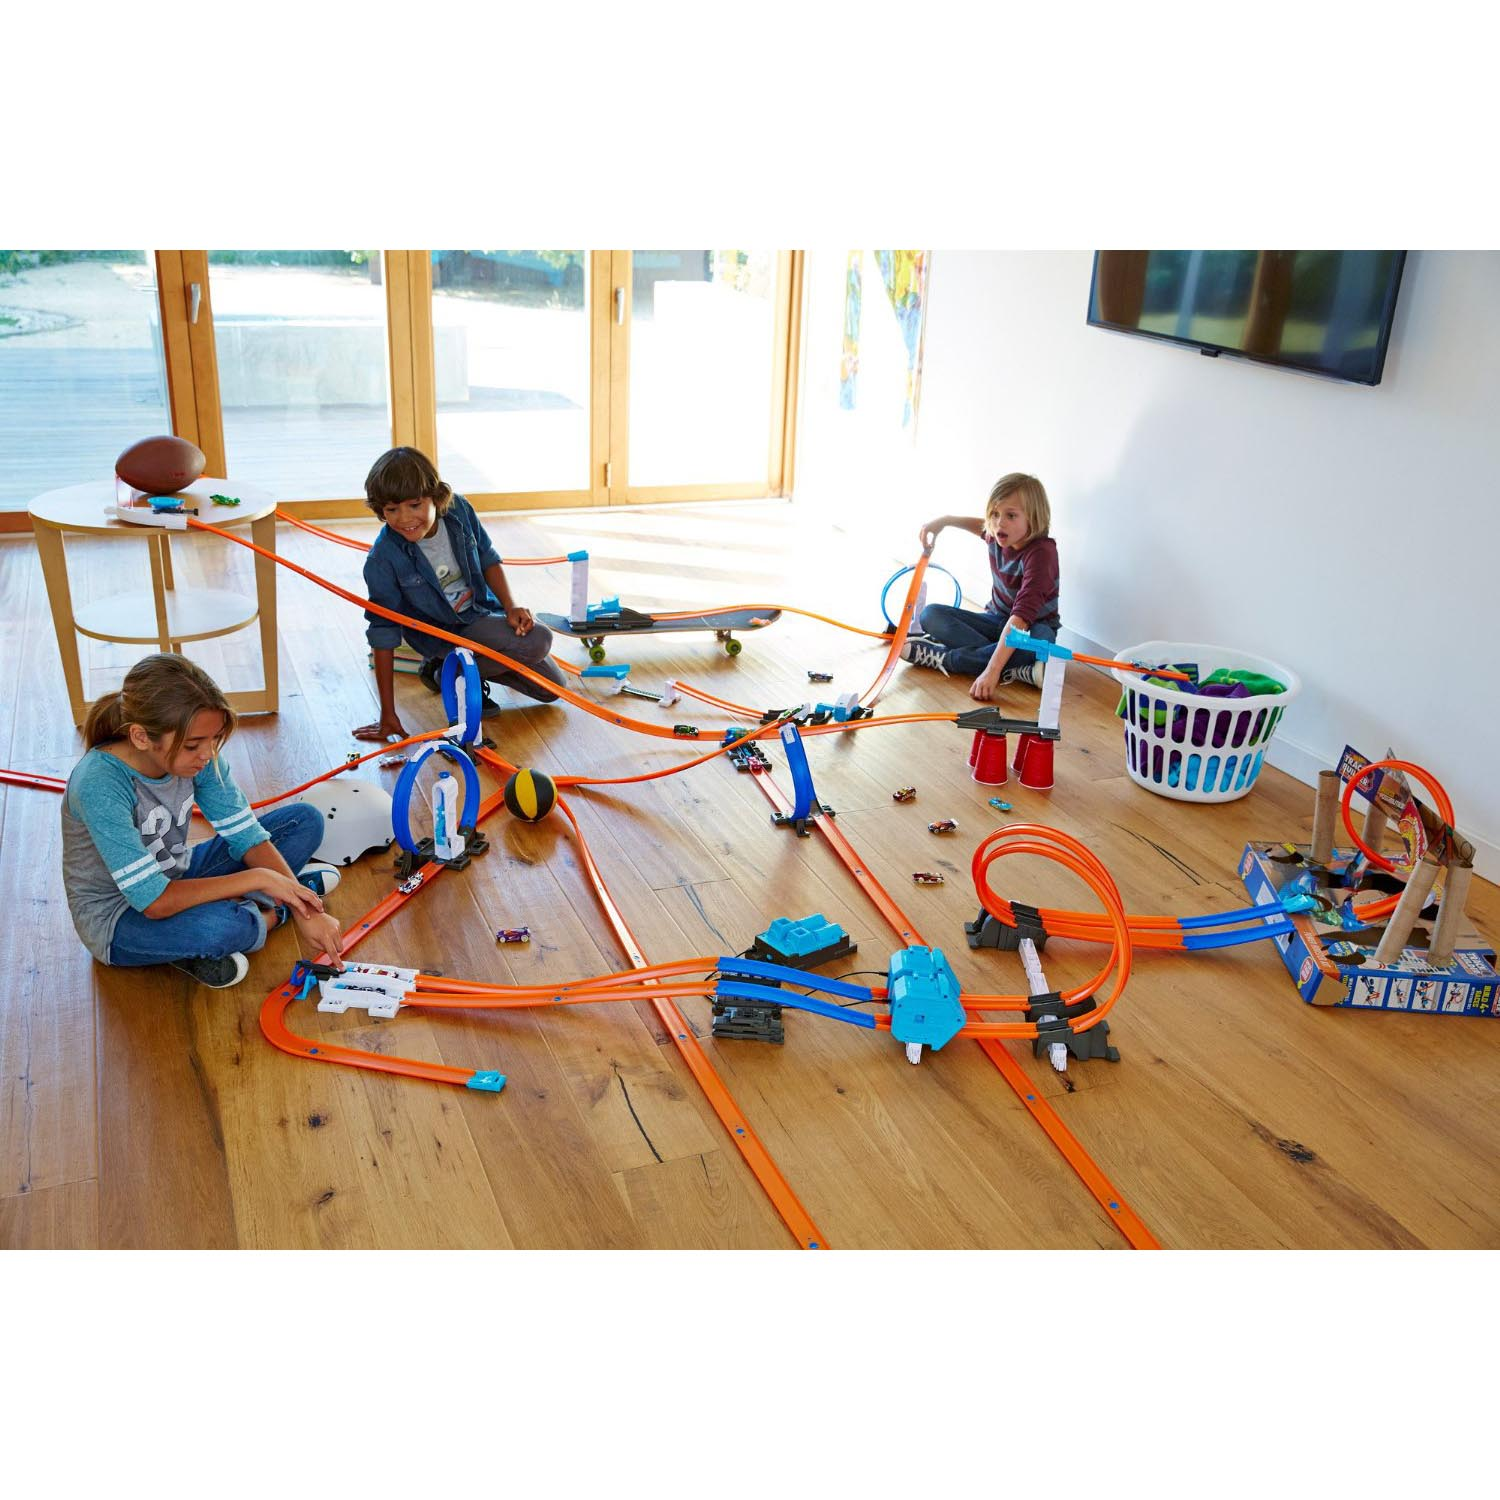 mattel hot wheels track builder system power booster kit with 35 pieces dgd30 ebay. Black Bedroom Furniture Sets. Home Design Ideas